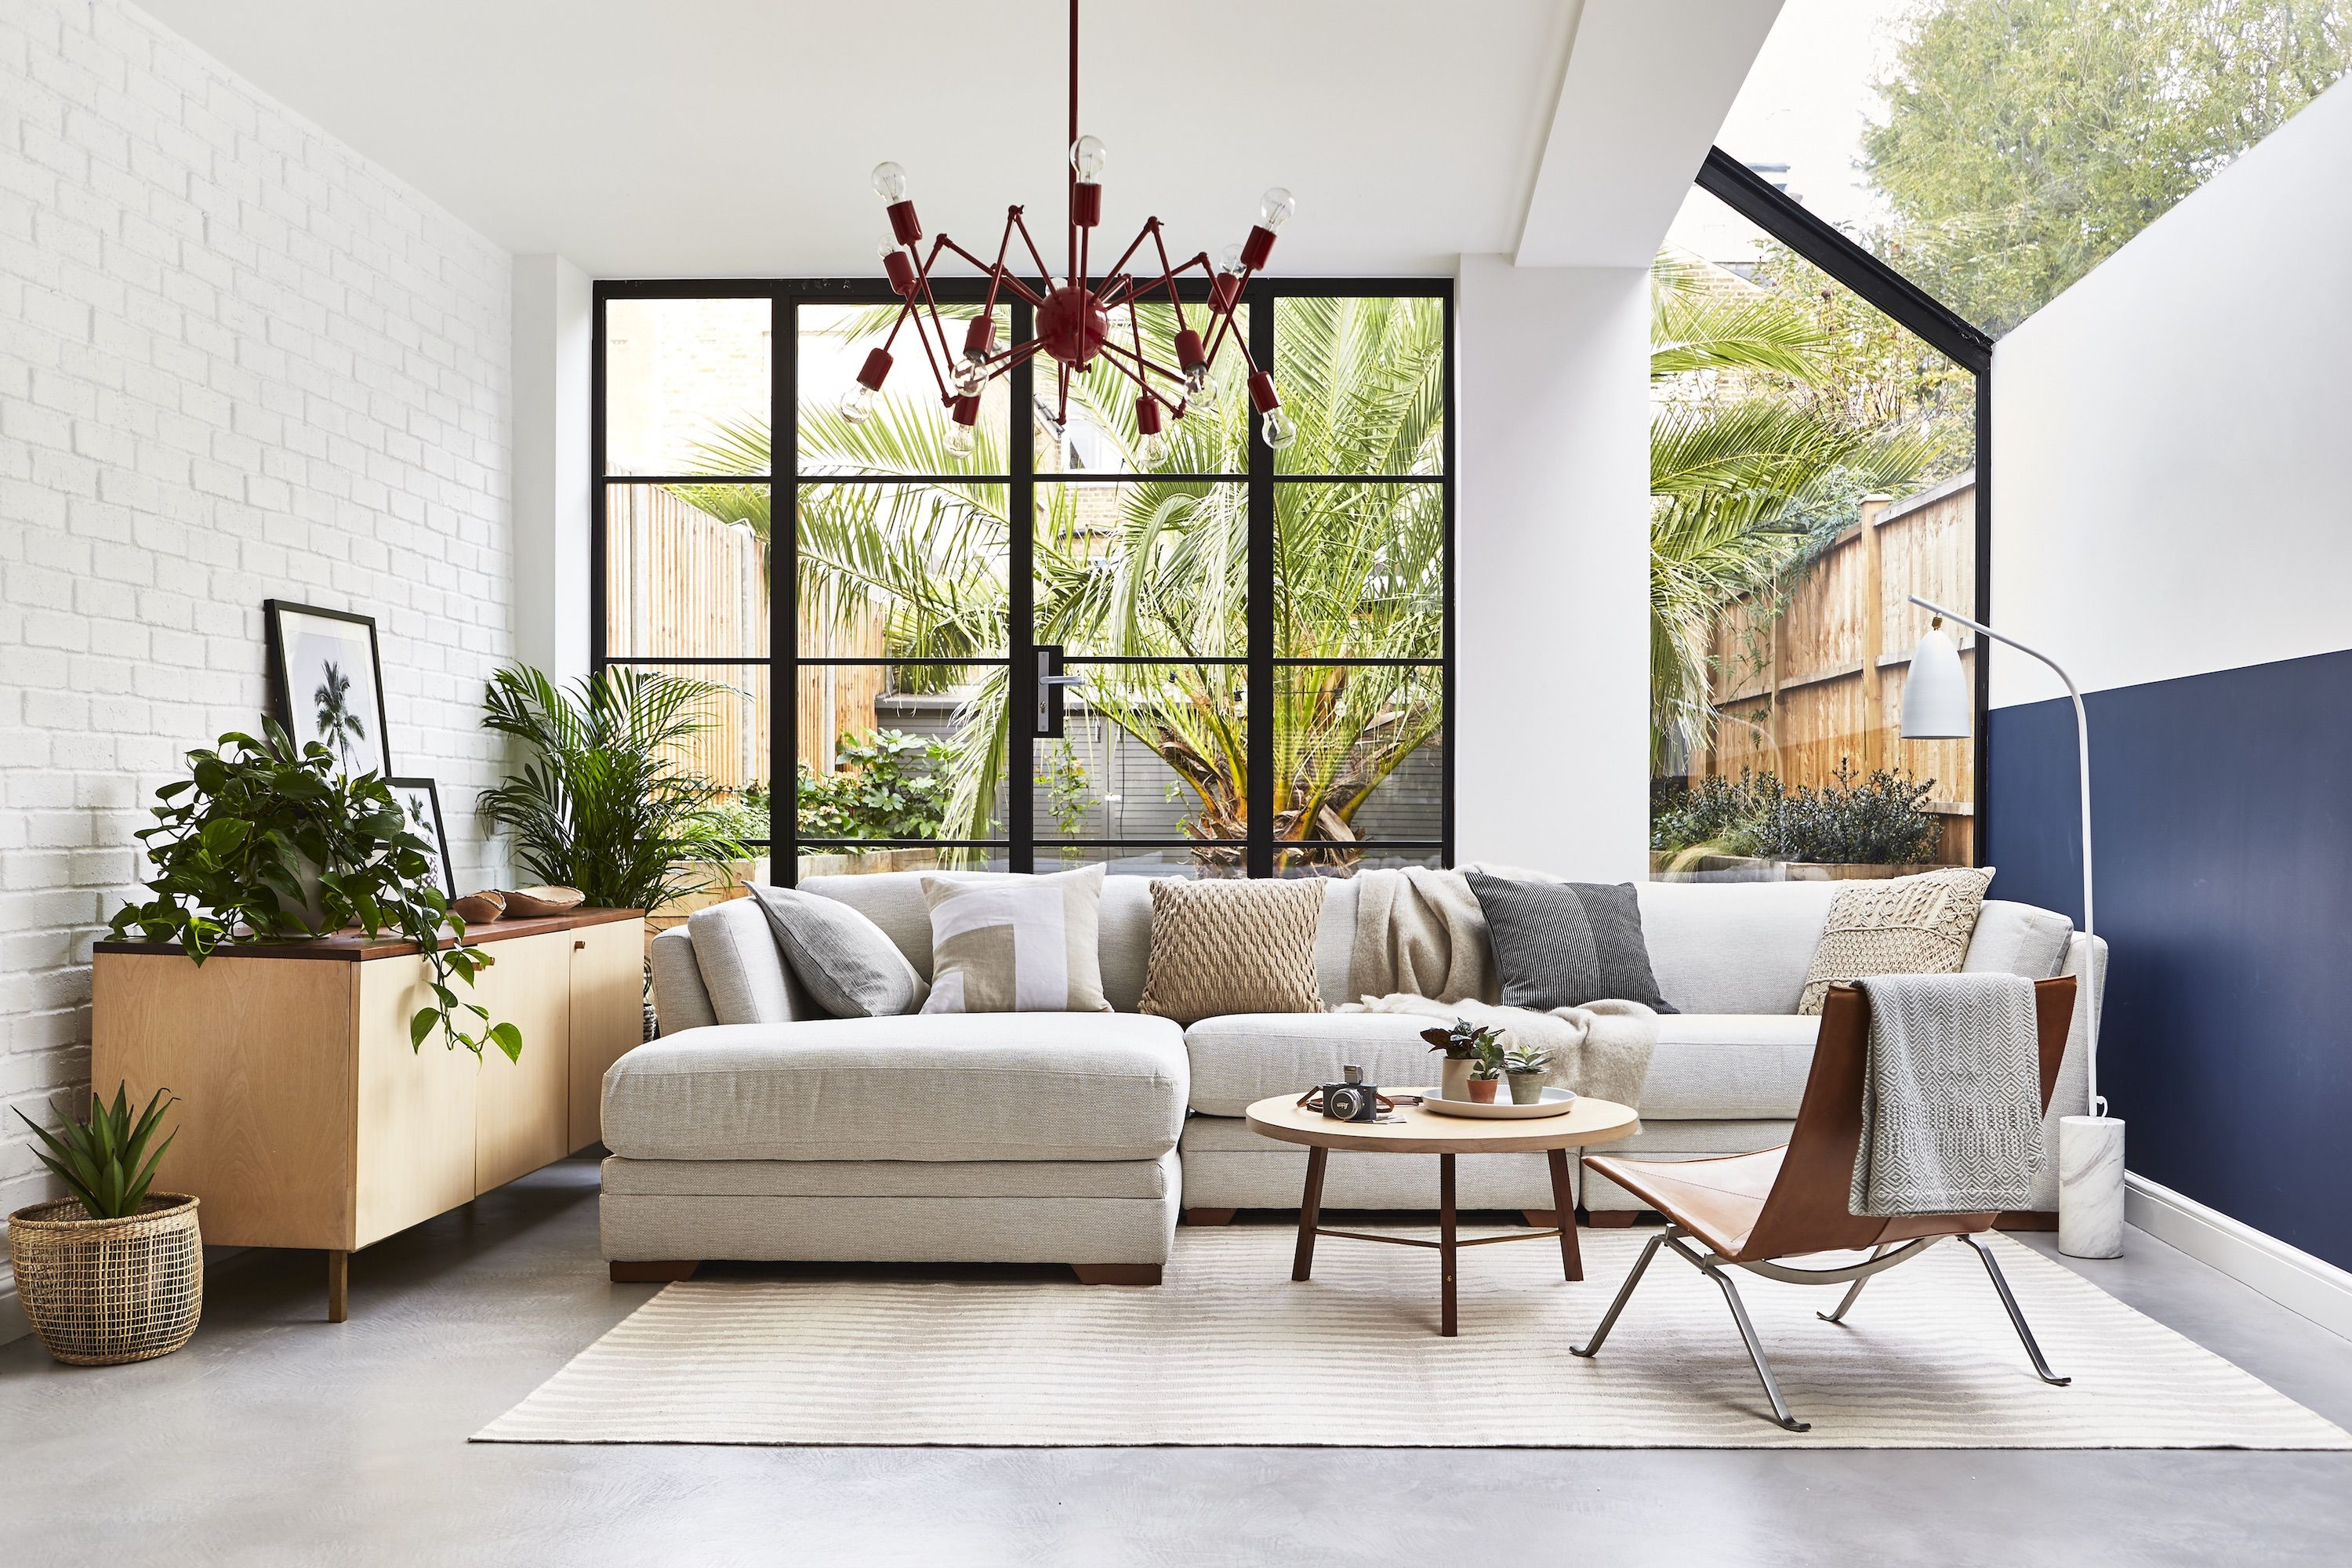 House Beautiful Modern Living Collections: Sofas, Flooring, Blinds